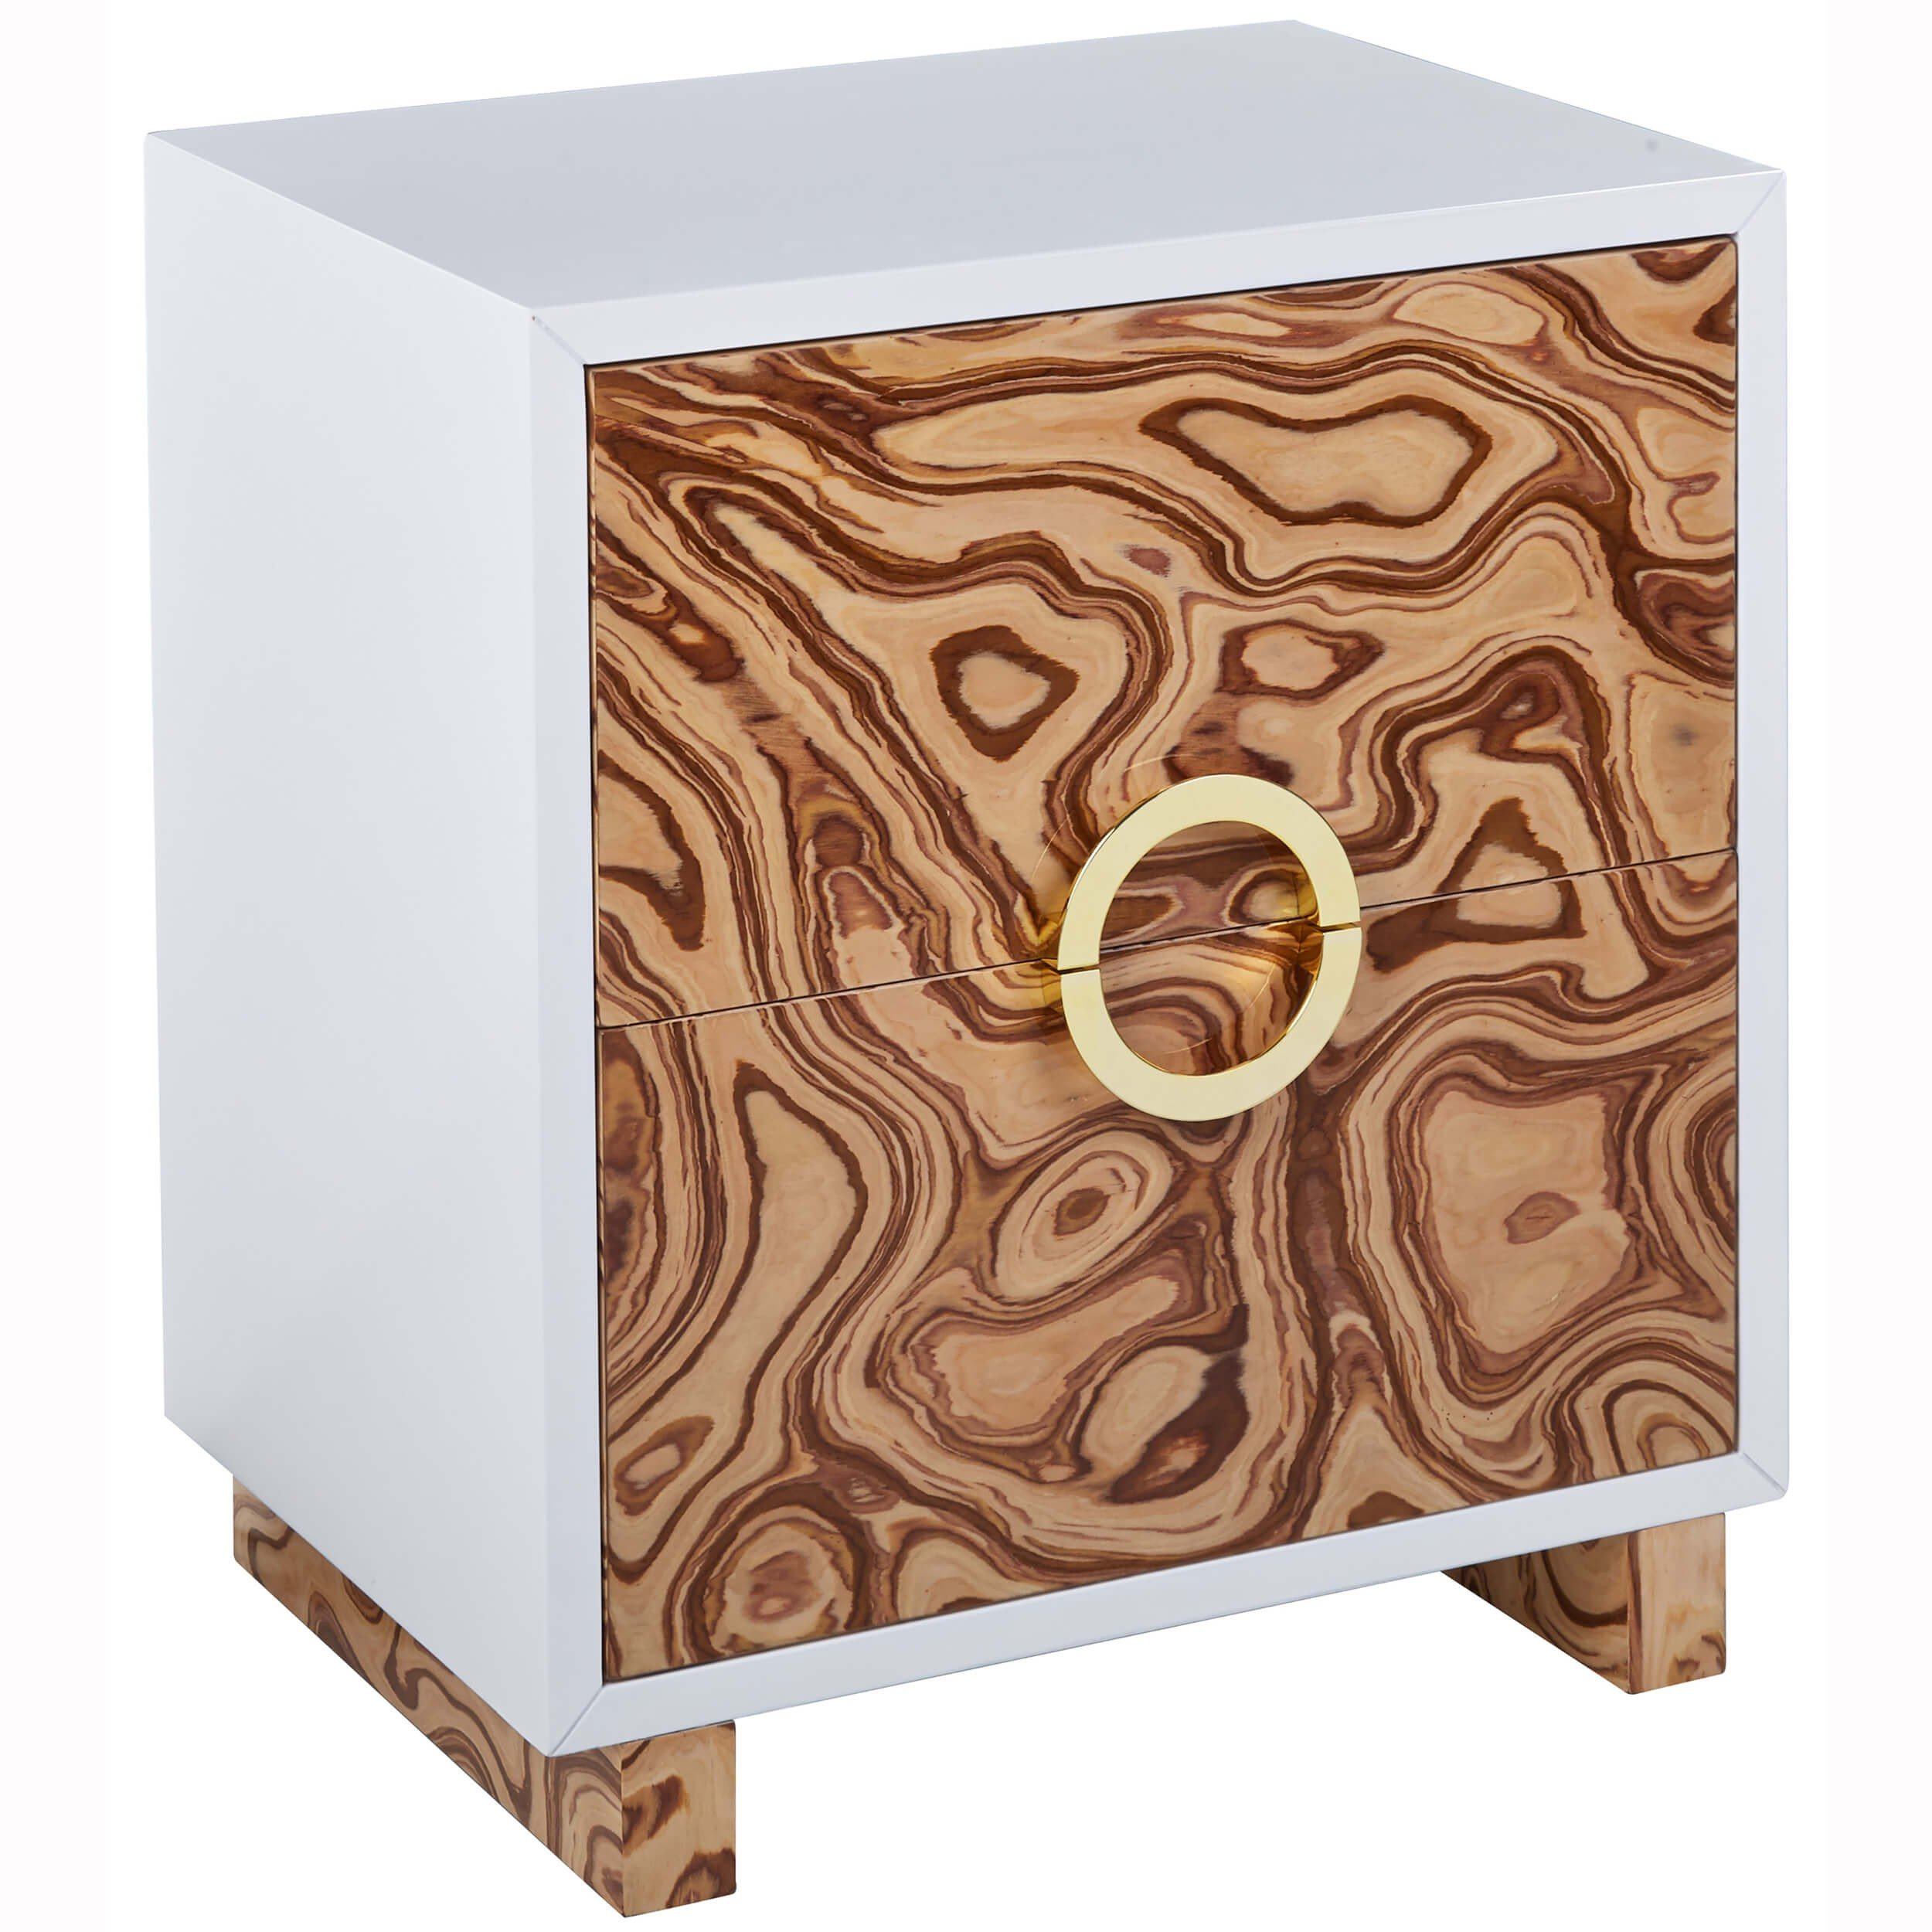 cavalli side table burl nightstands bedroom furniture tov accent tables end shades light target threshold square outdoor coffee cast aluminum patio hairpin leg bedside drawing